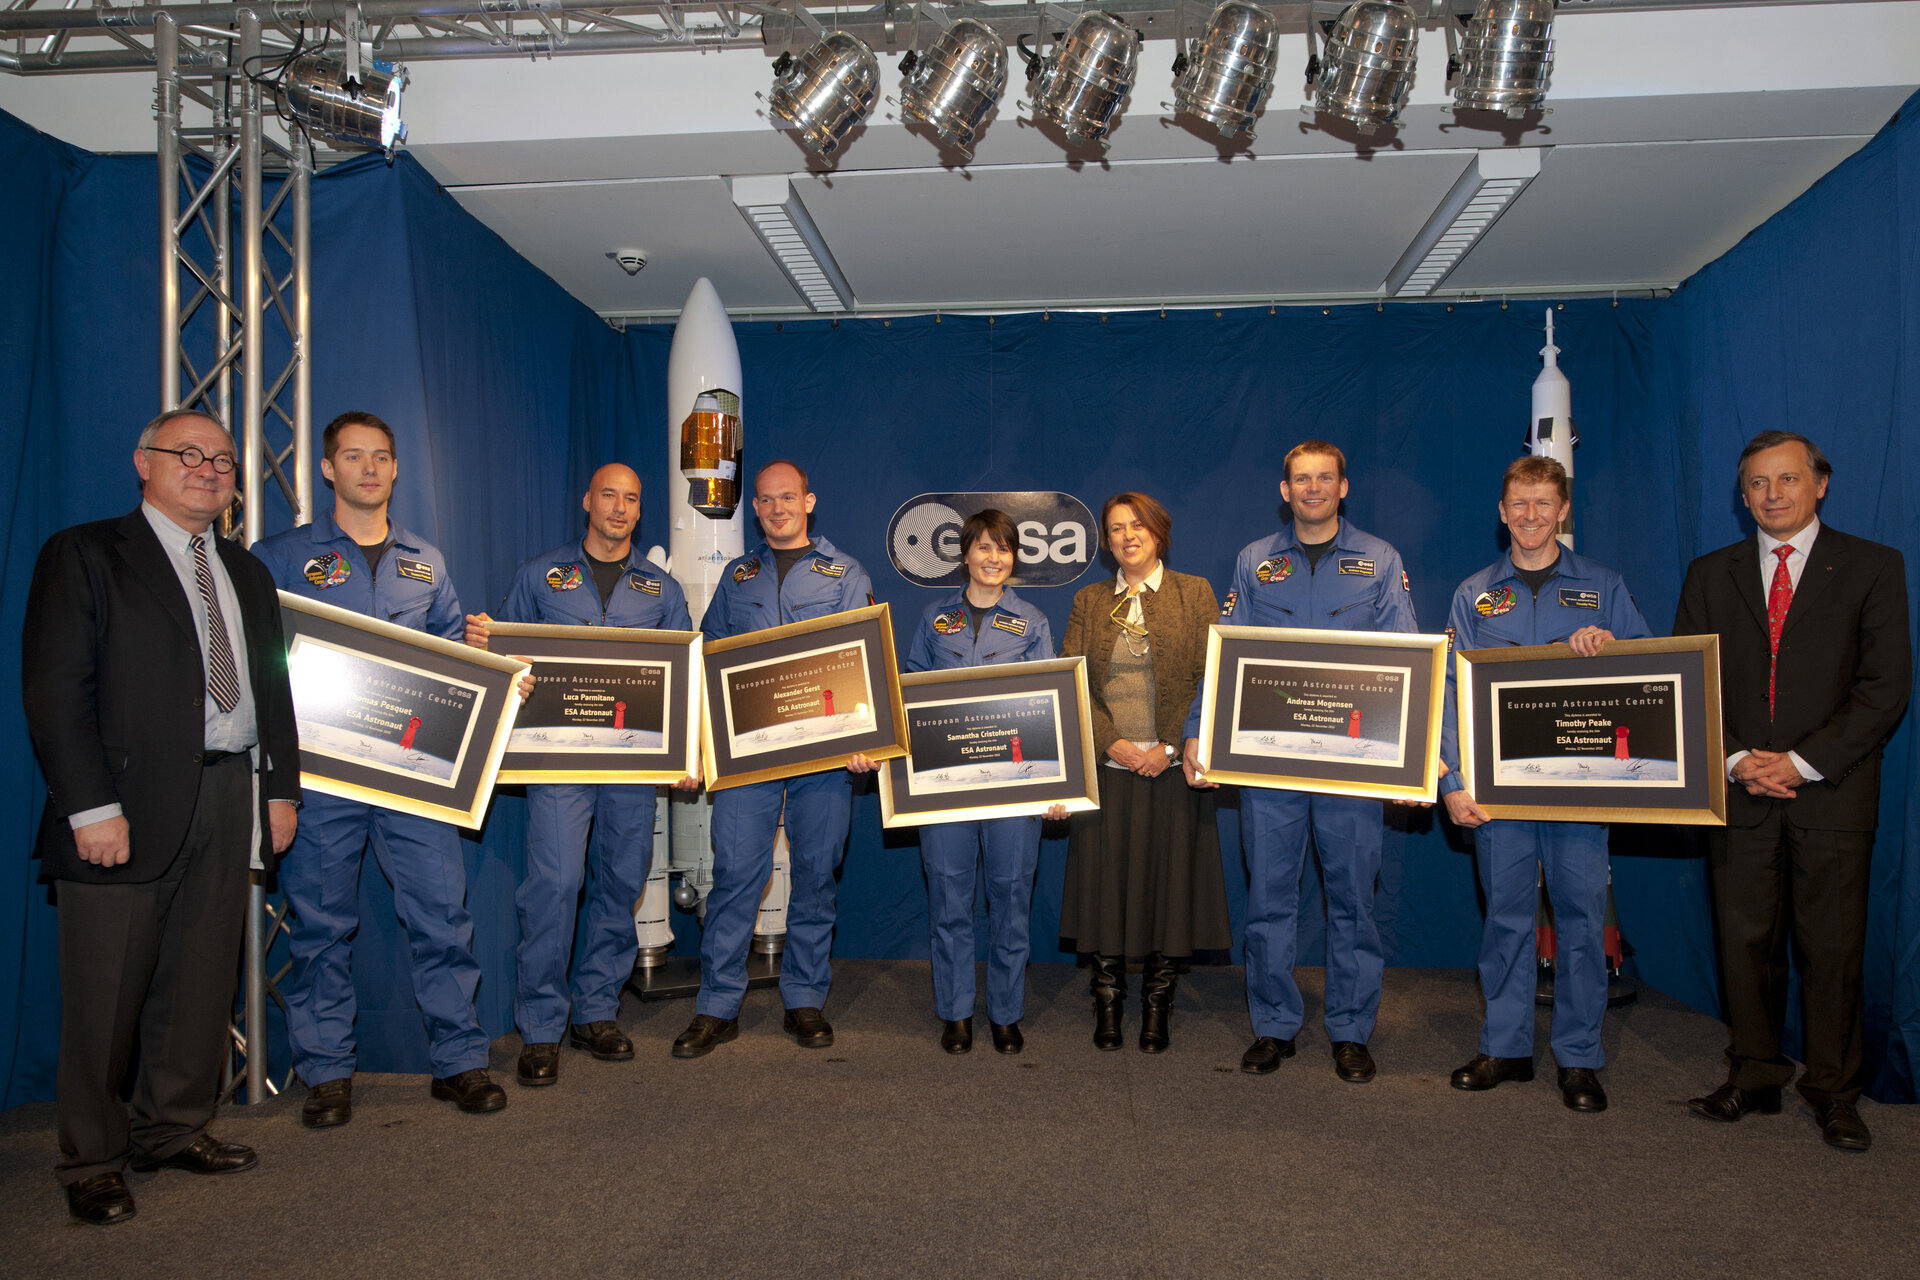 ESA's new astronauts display their diplomas